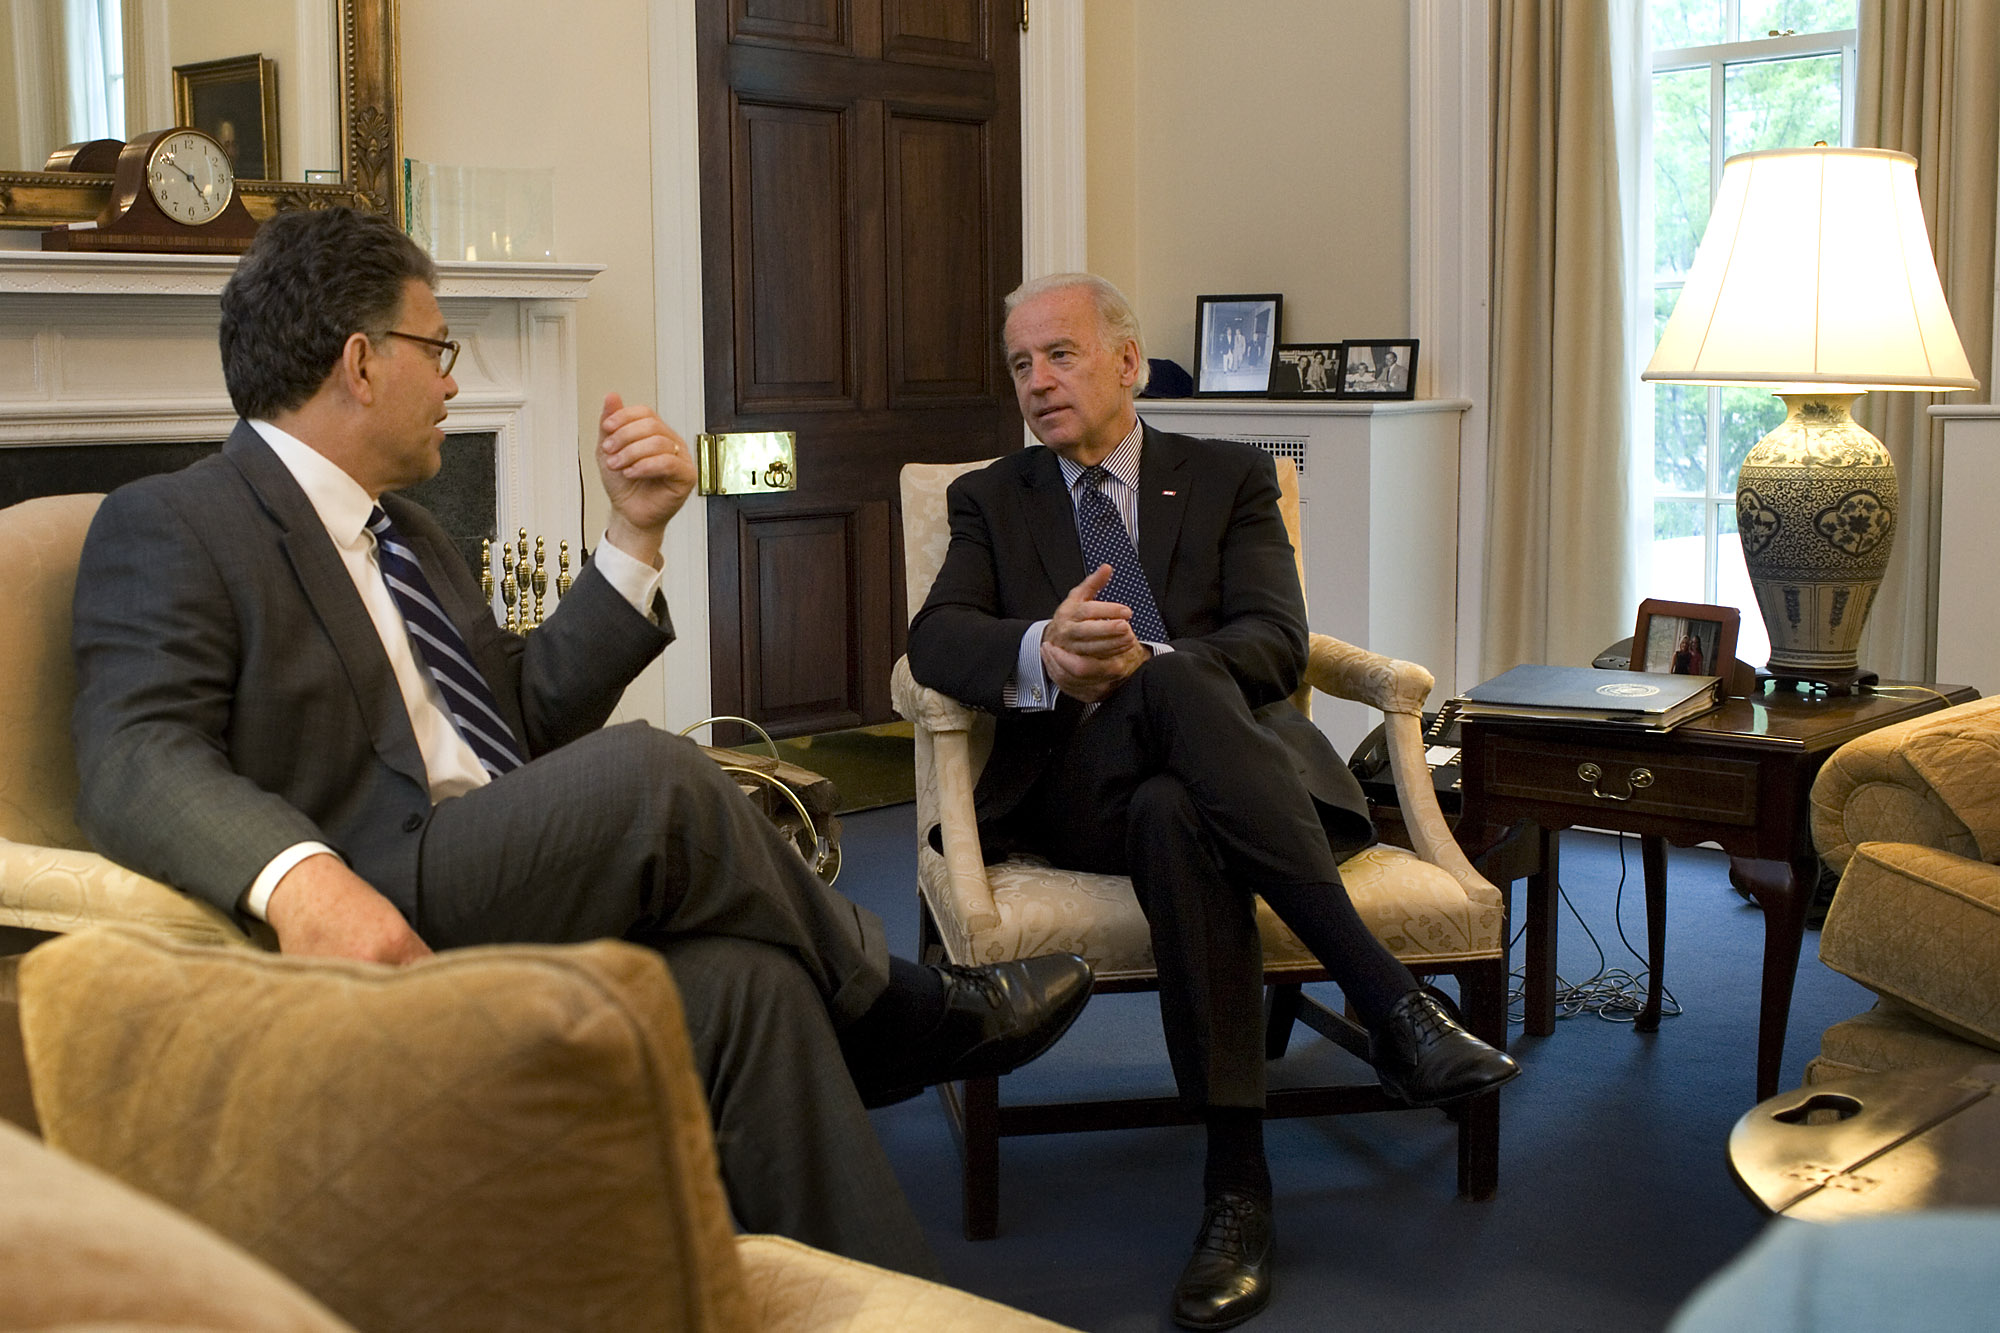 Vice President Joe Biden meets with Al Franken in the Vice President's West Wing office in Washington DC, Wednesday, May 6, 2009.  Official White House Photo by David Lienemann